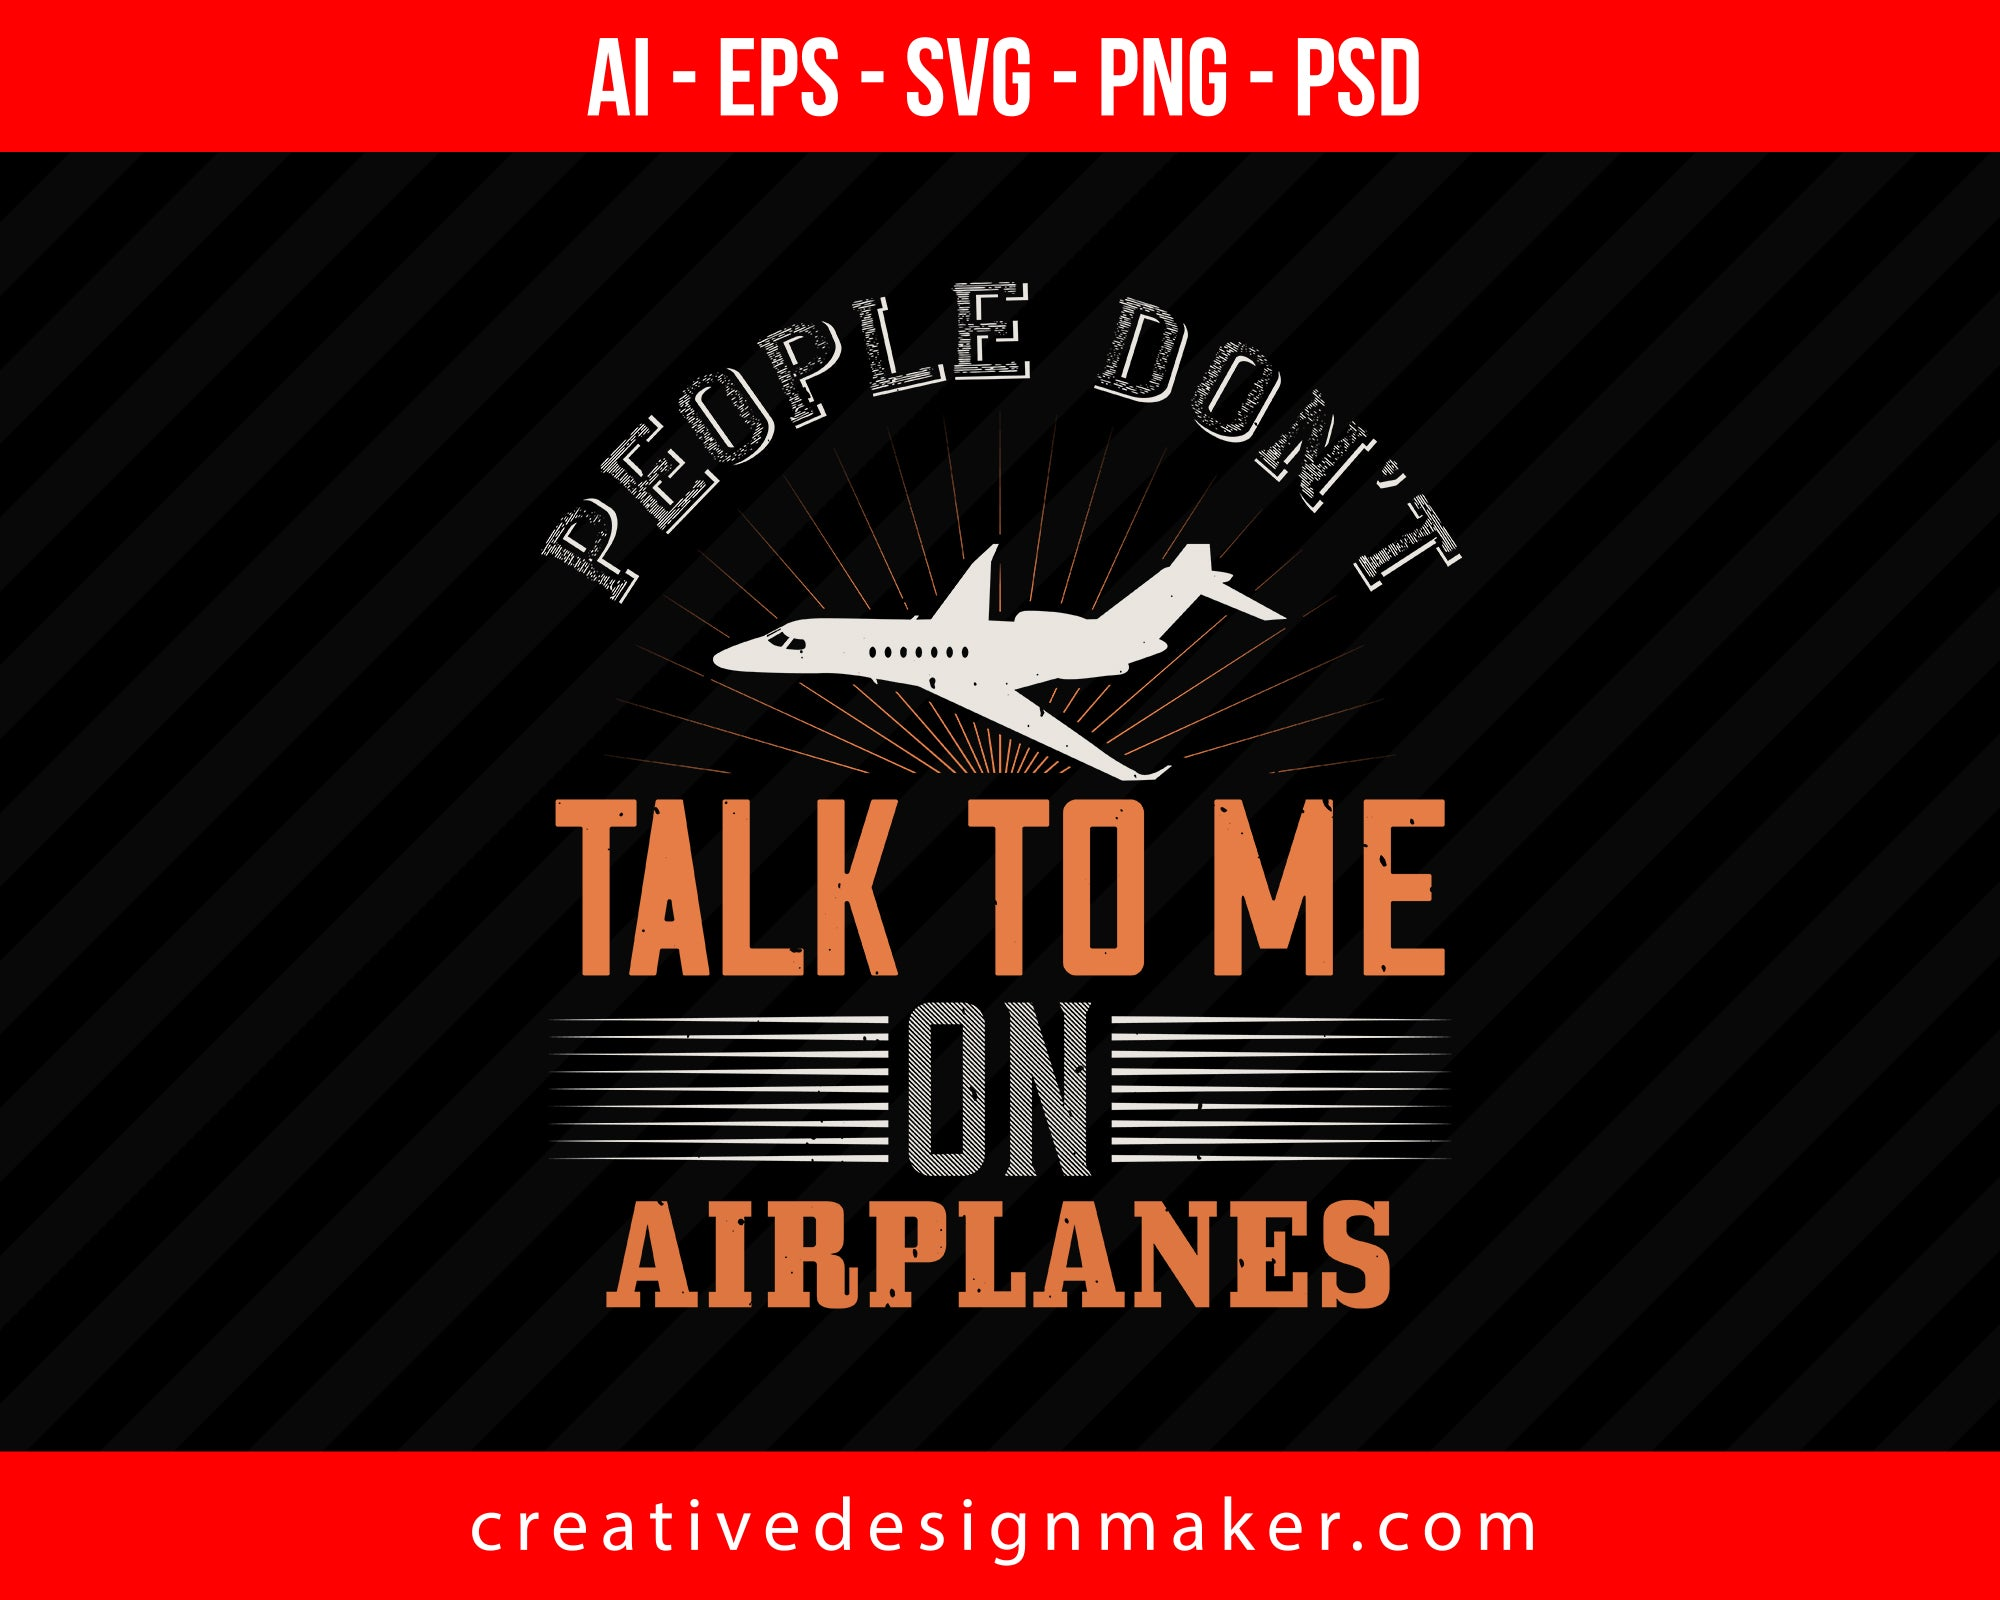 People don't talk to me on airplanes. Vehicles Print Ready Editable T-Shirt SVG Design!